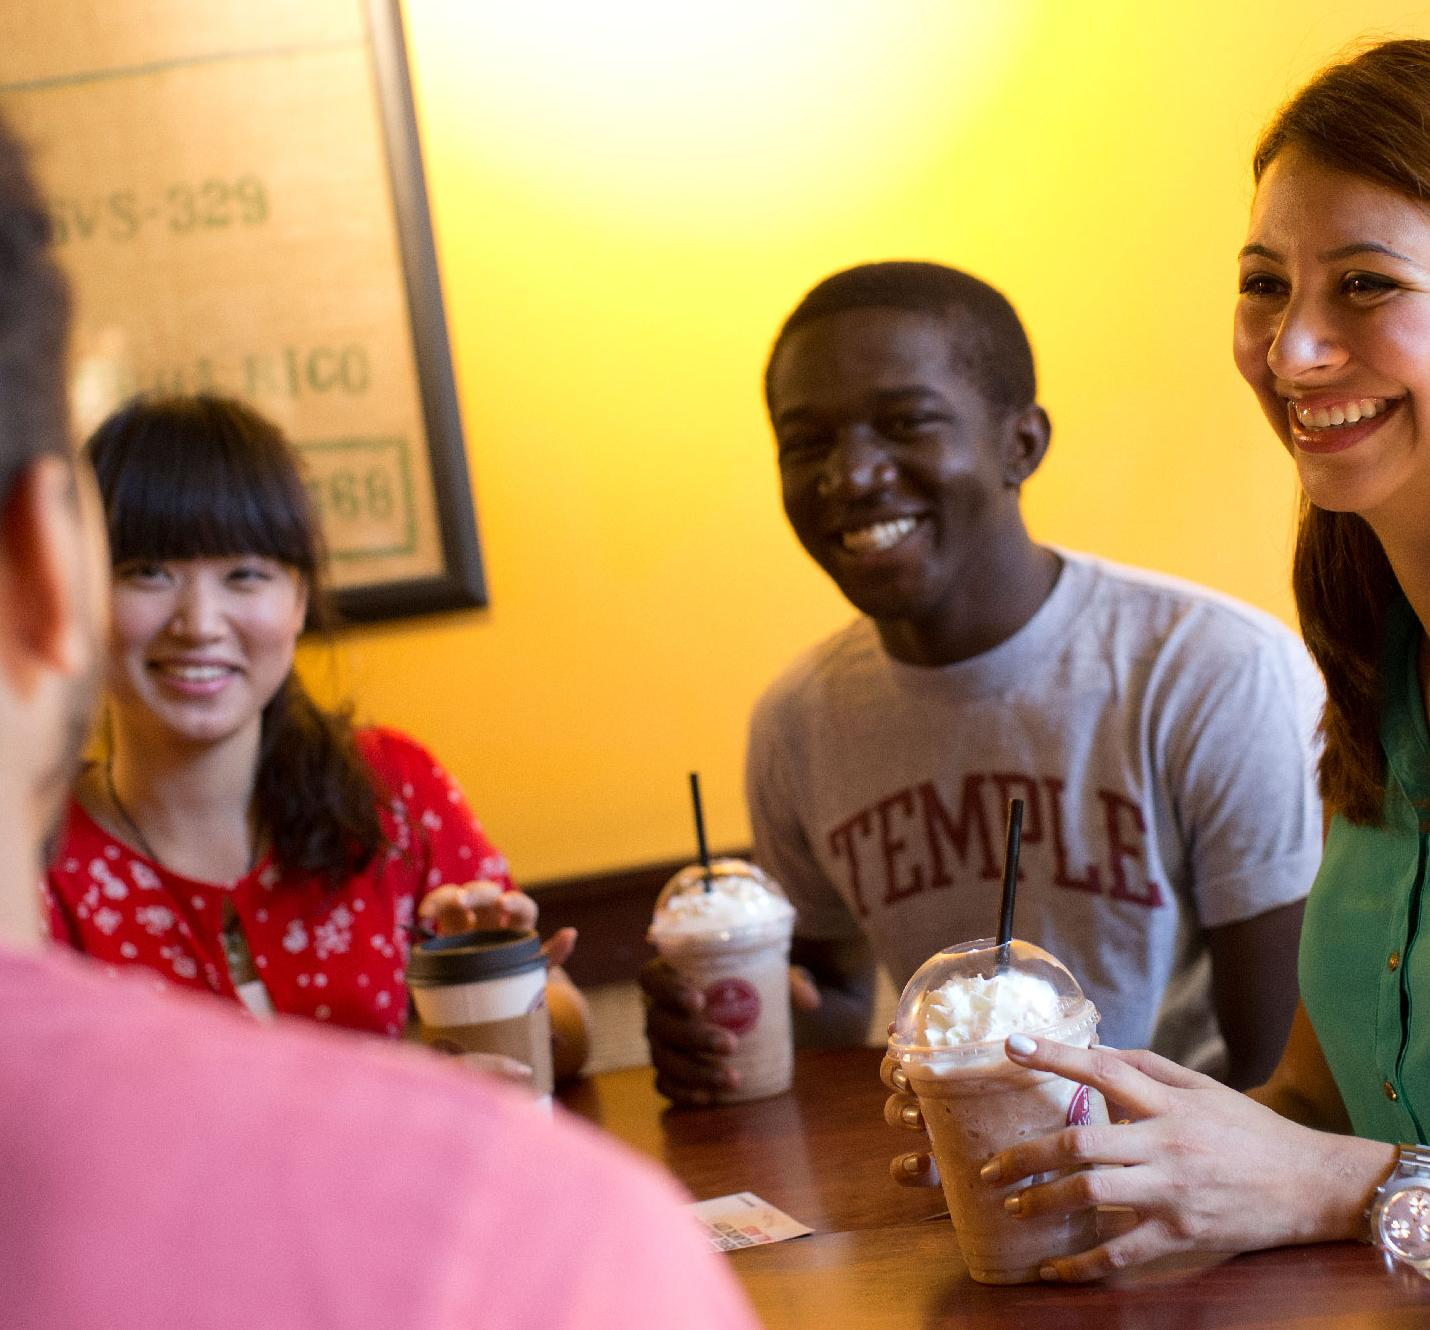 Students Talking at American Cafe